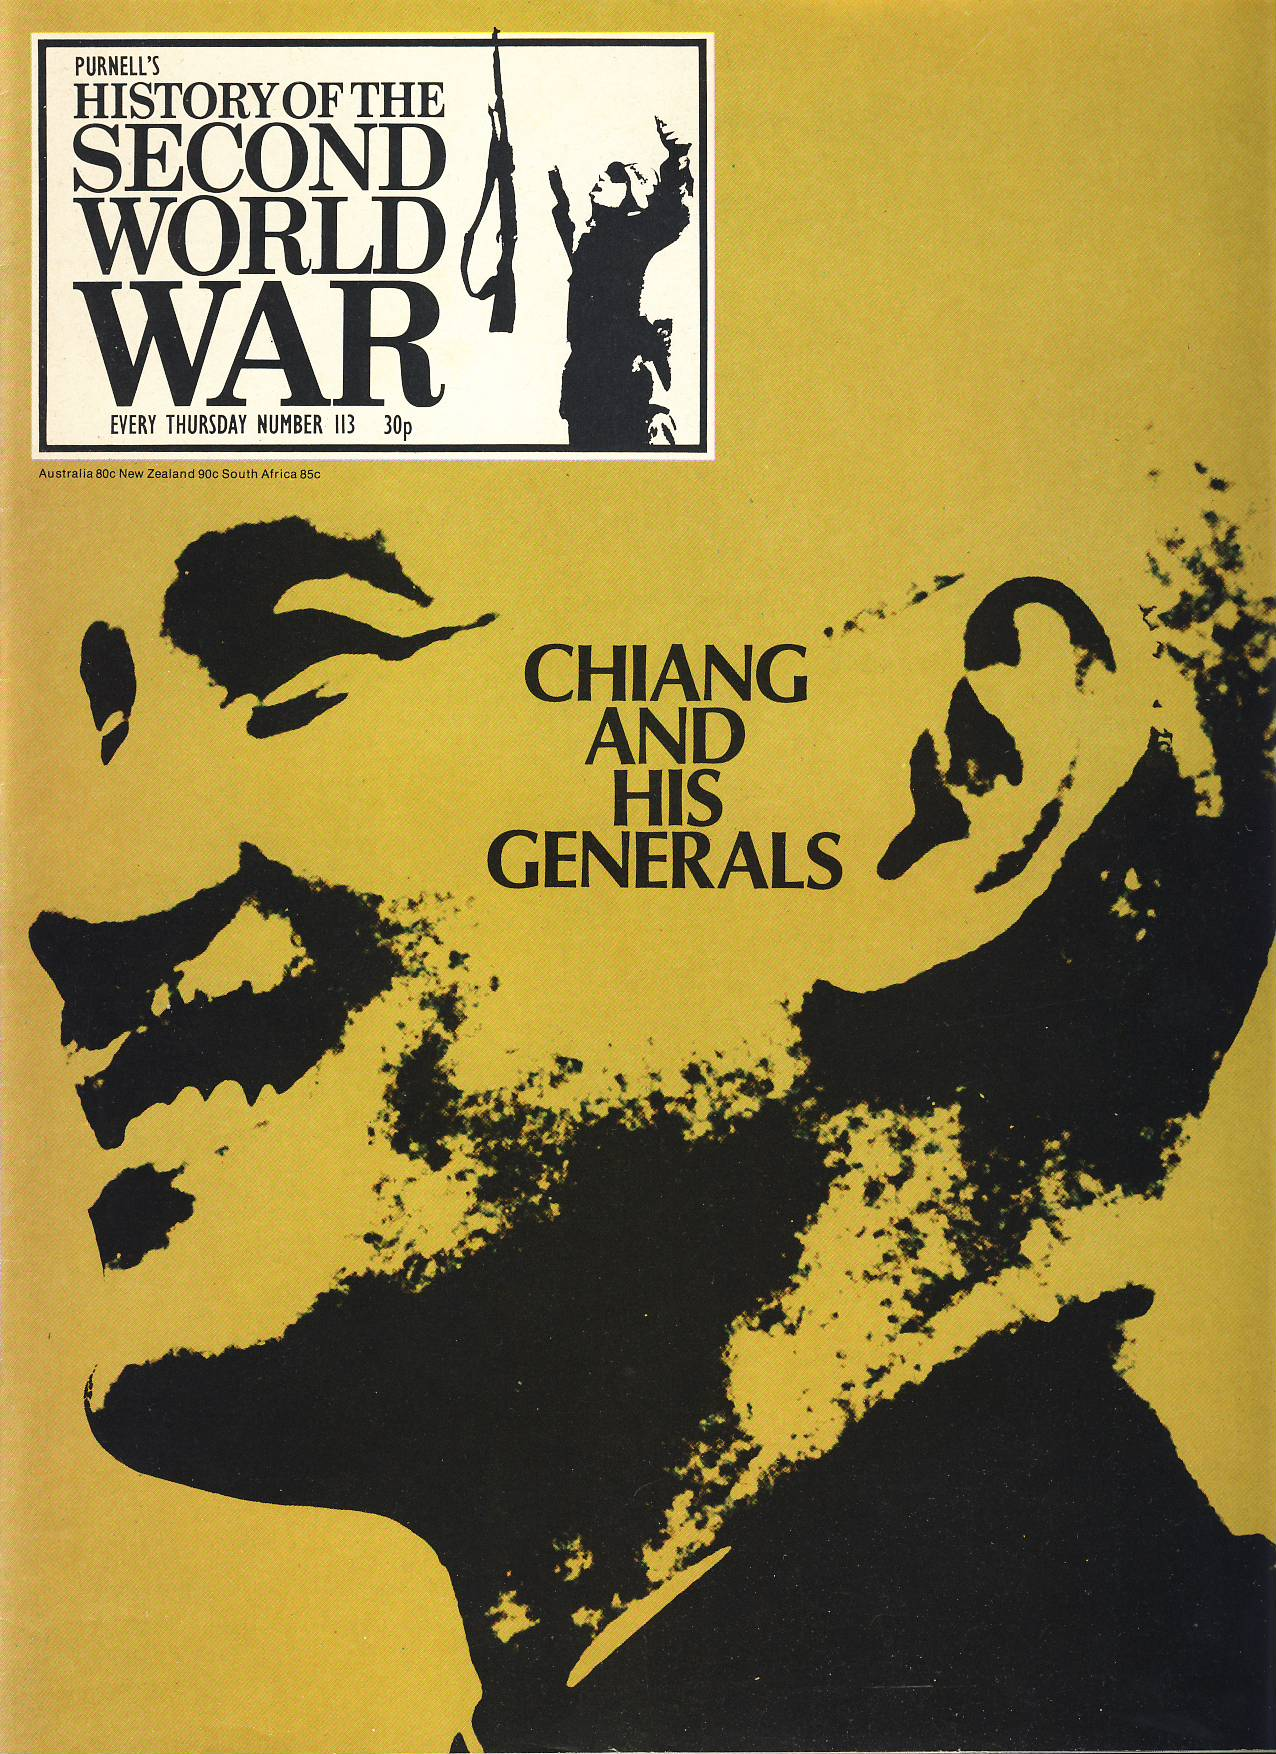 History of the Second World War Magazine #113 CHIANG AND HIS GENERALS A vintage Purnell's weekly magazine in good read condition. Please see larger photo and full description for details.